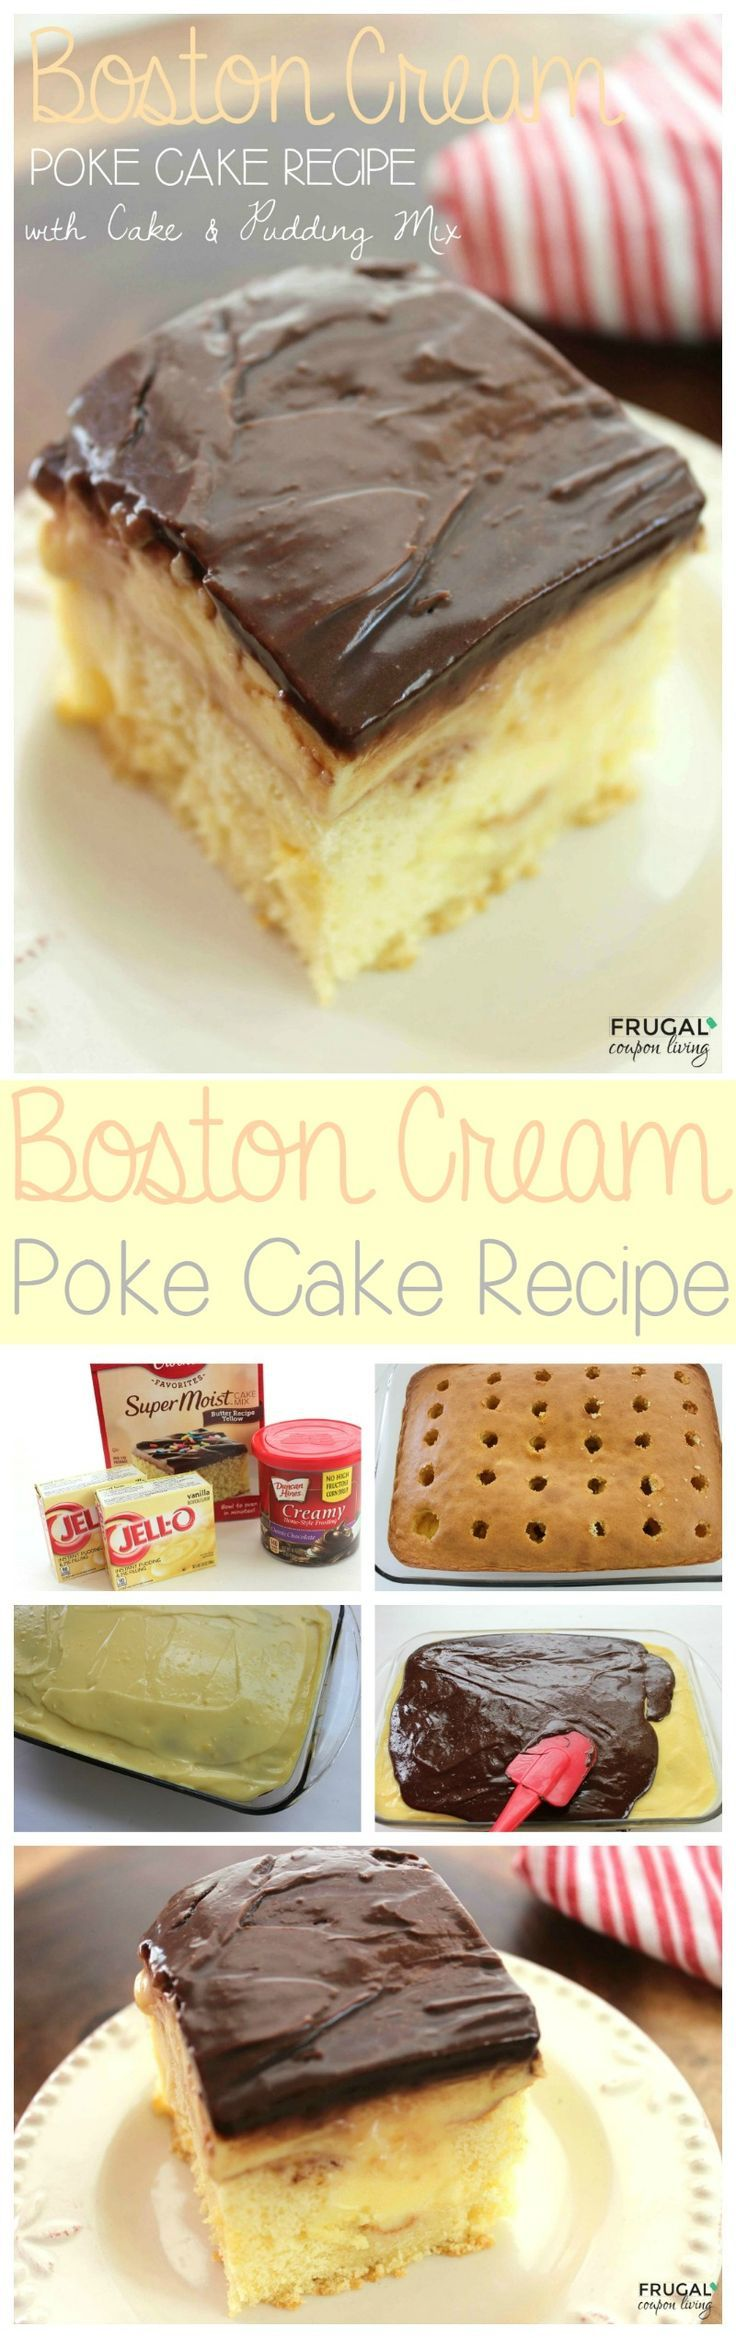 Recipes cake with pudding mix